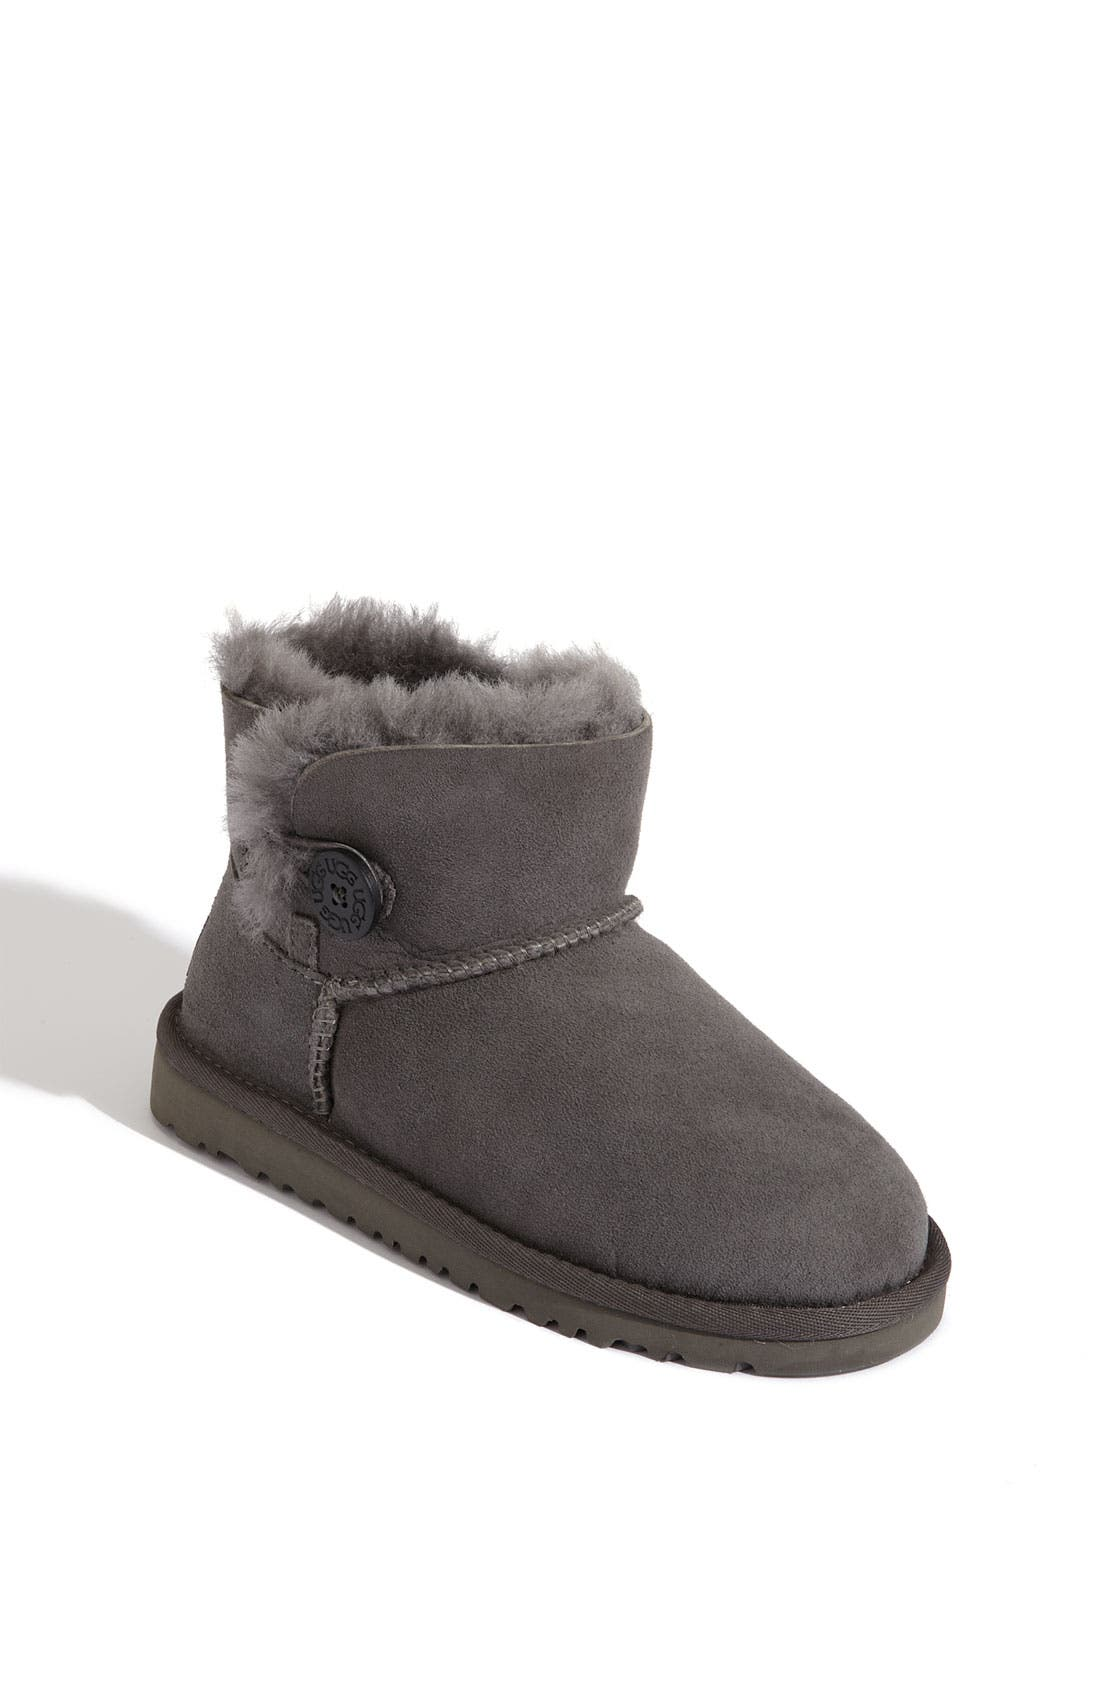 Alternate Image 1 Selected - UGG® Australia 'Mini Bailey' Button Boot (Walker, Toddler, Little Kid & Big Kid)